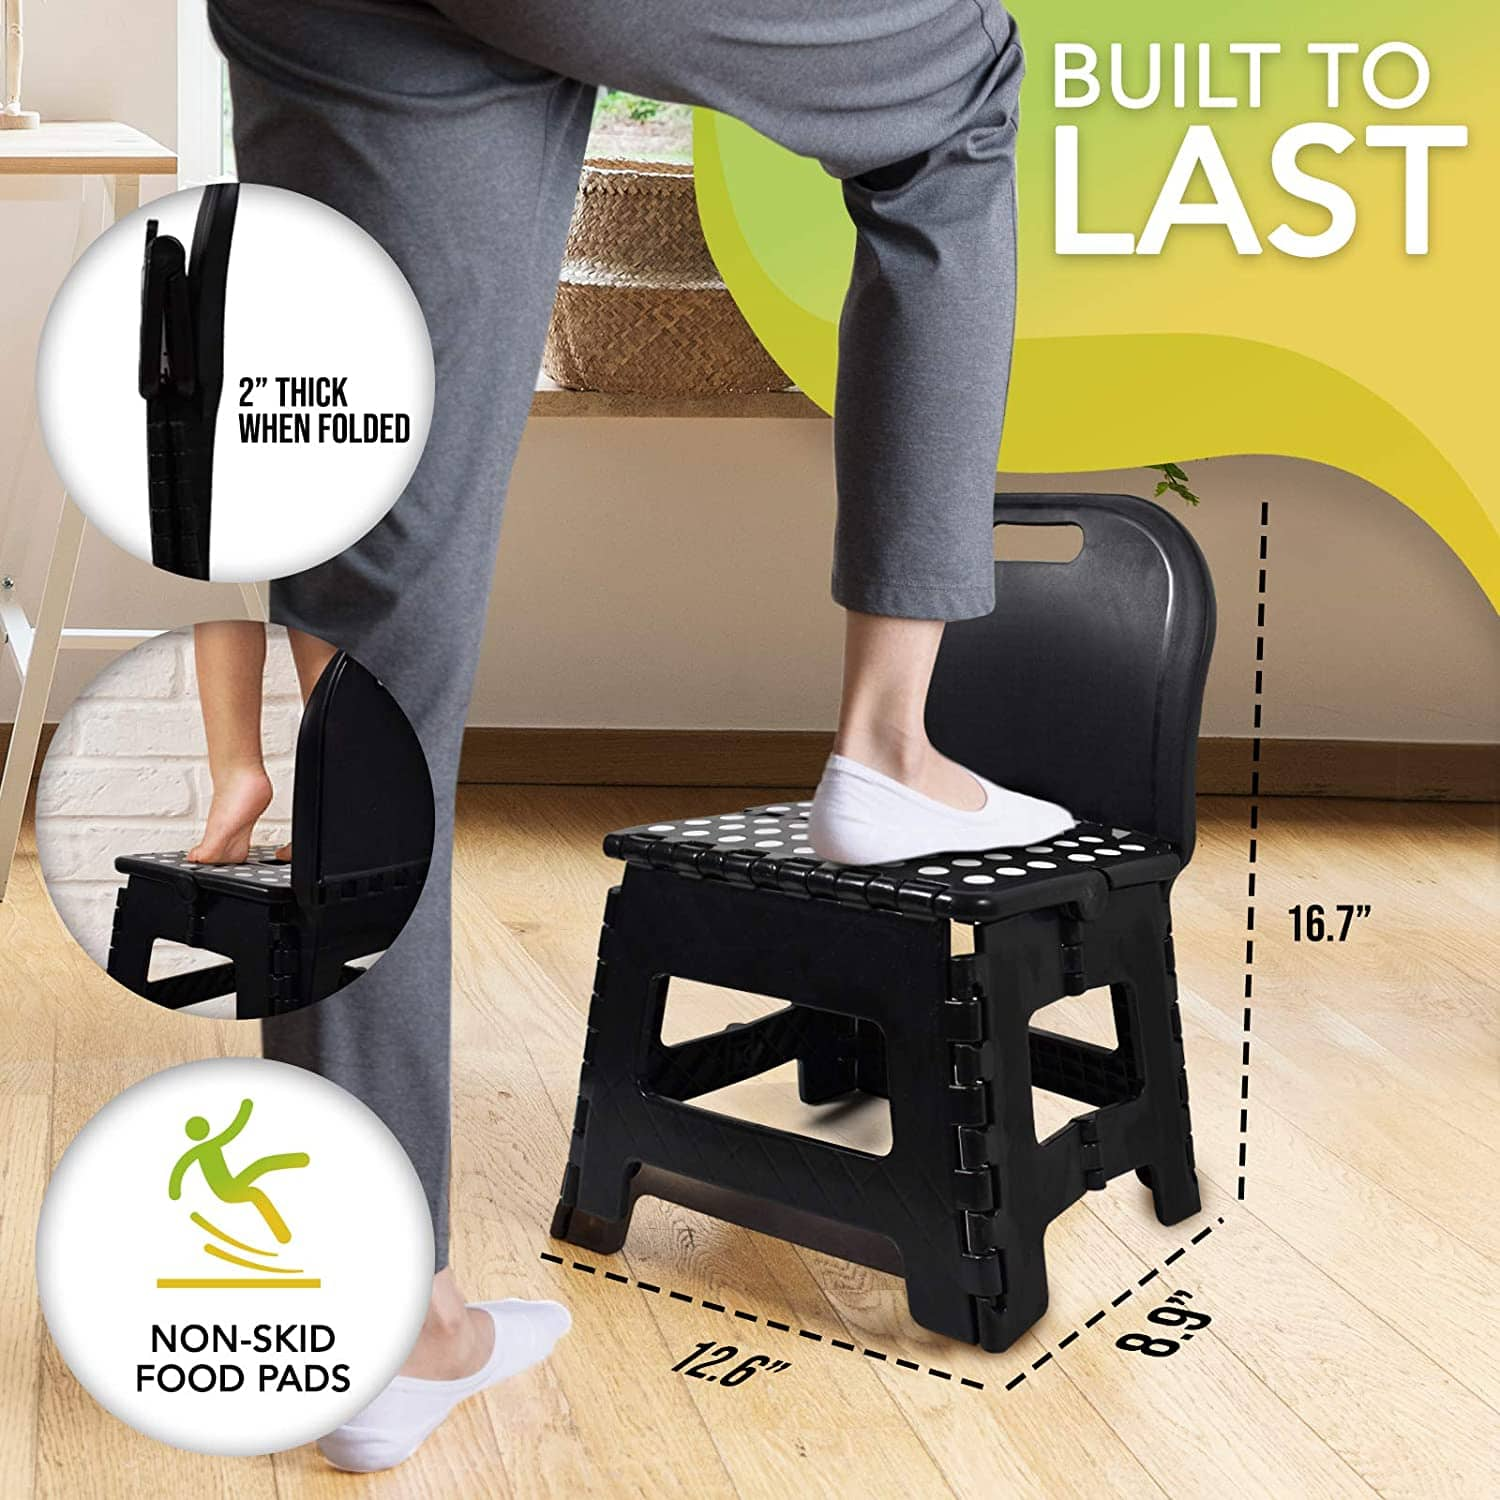 Small Collapsible Household Folding Step Stool with Back Support